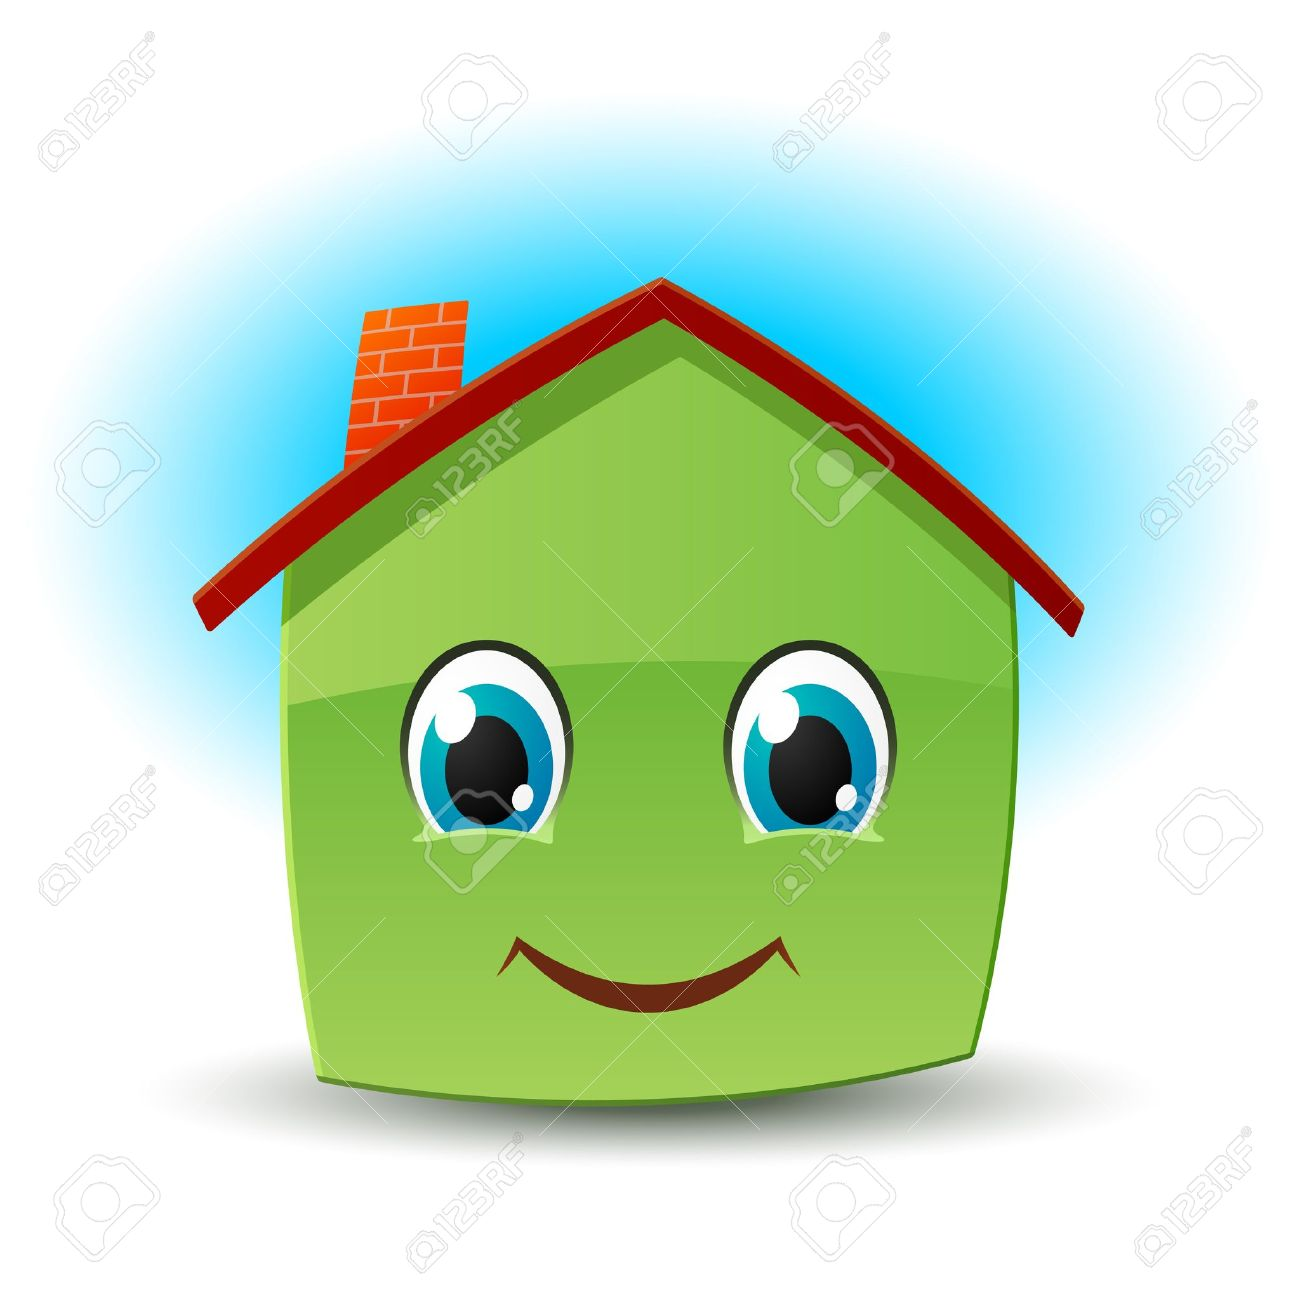 Smiling house Stock Vector - 9476376